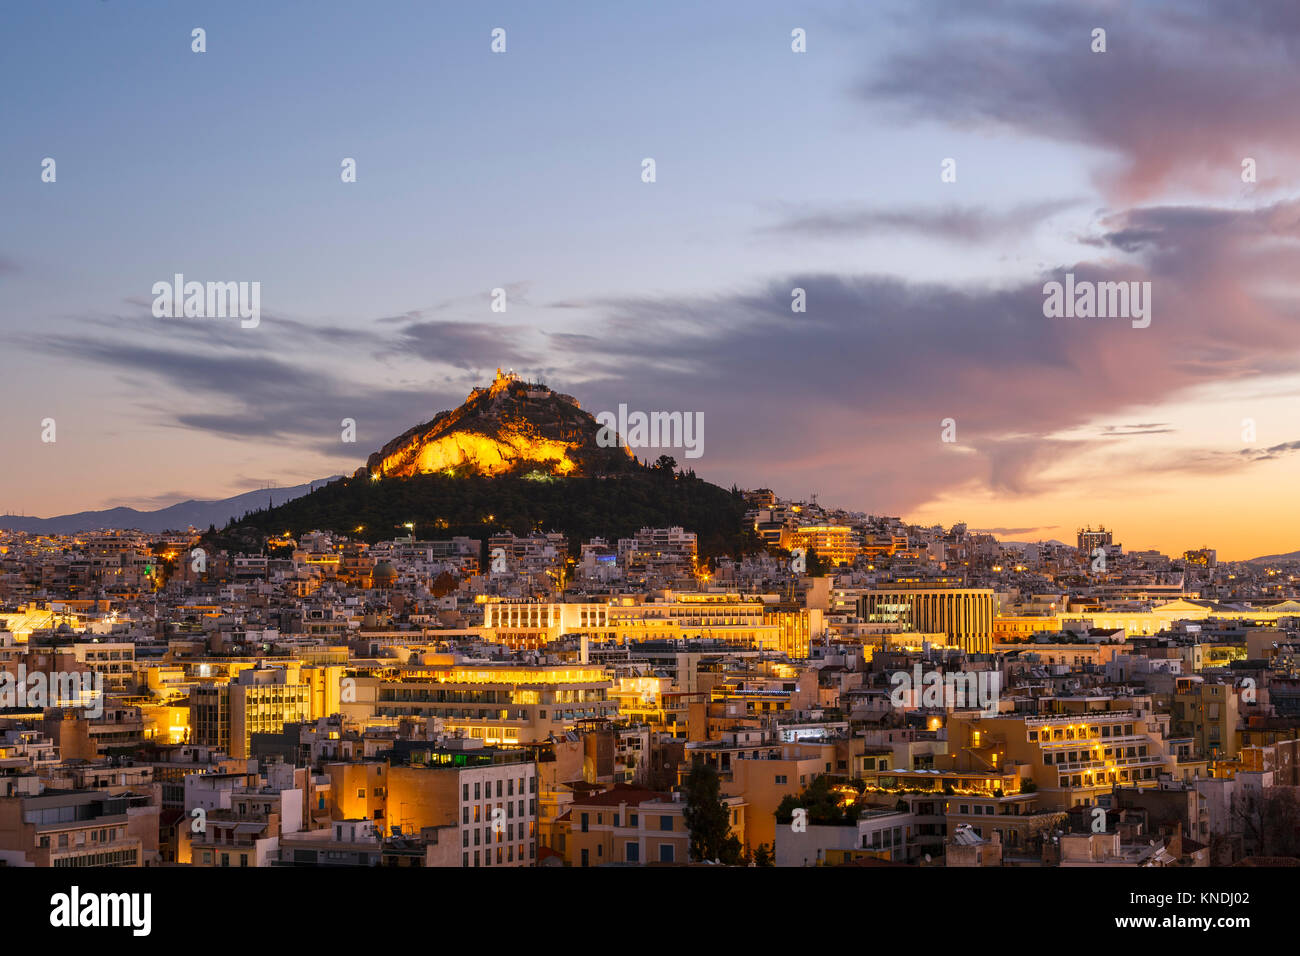 View of Lycabettus hill from Anafiotika neighborhood in the old town of Athens, Greece. - Stock Image